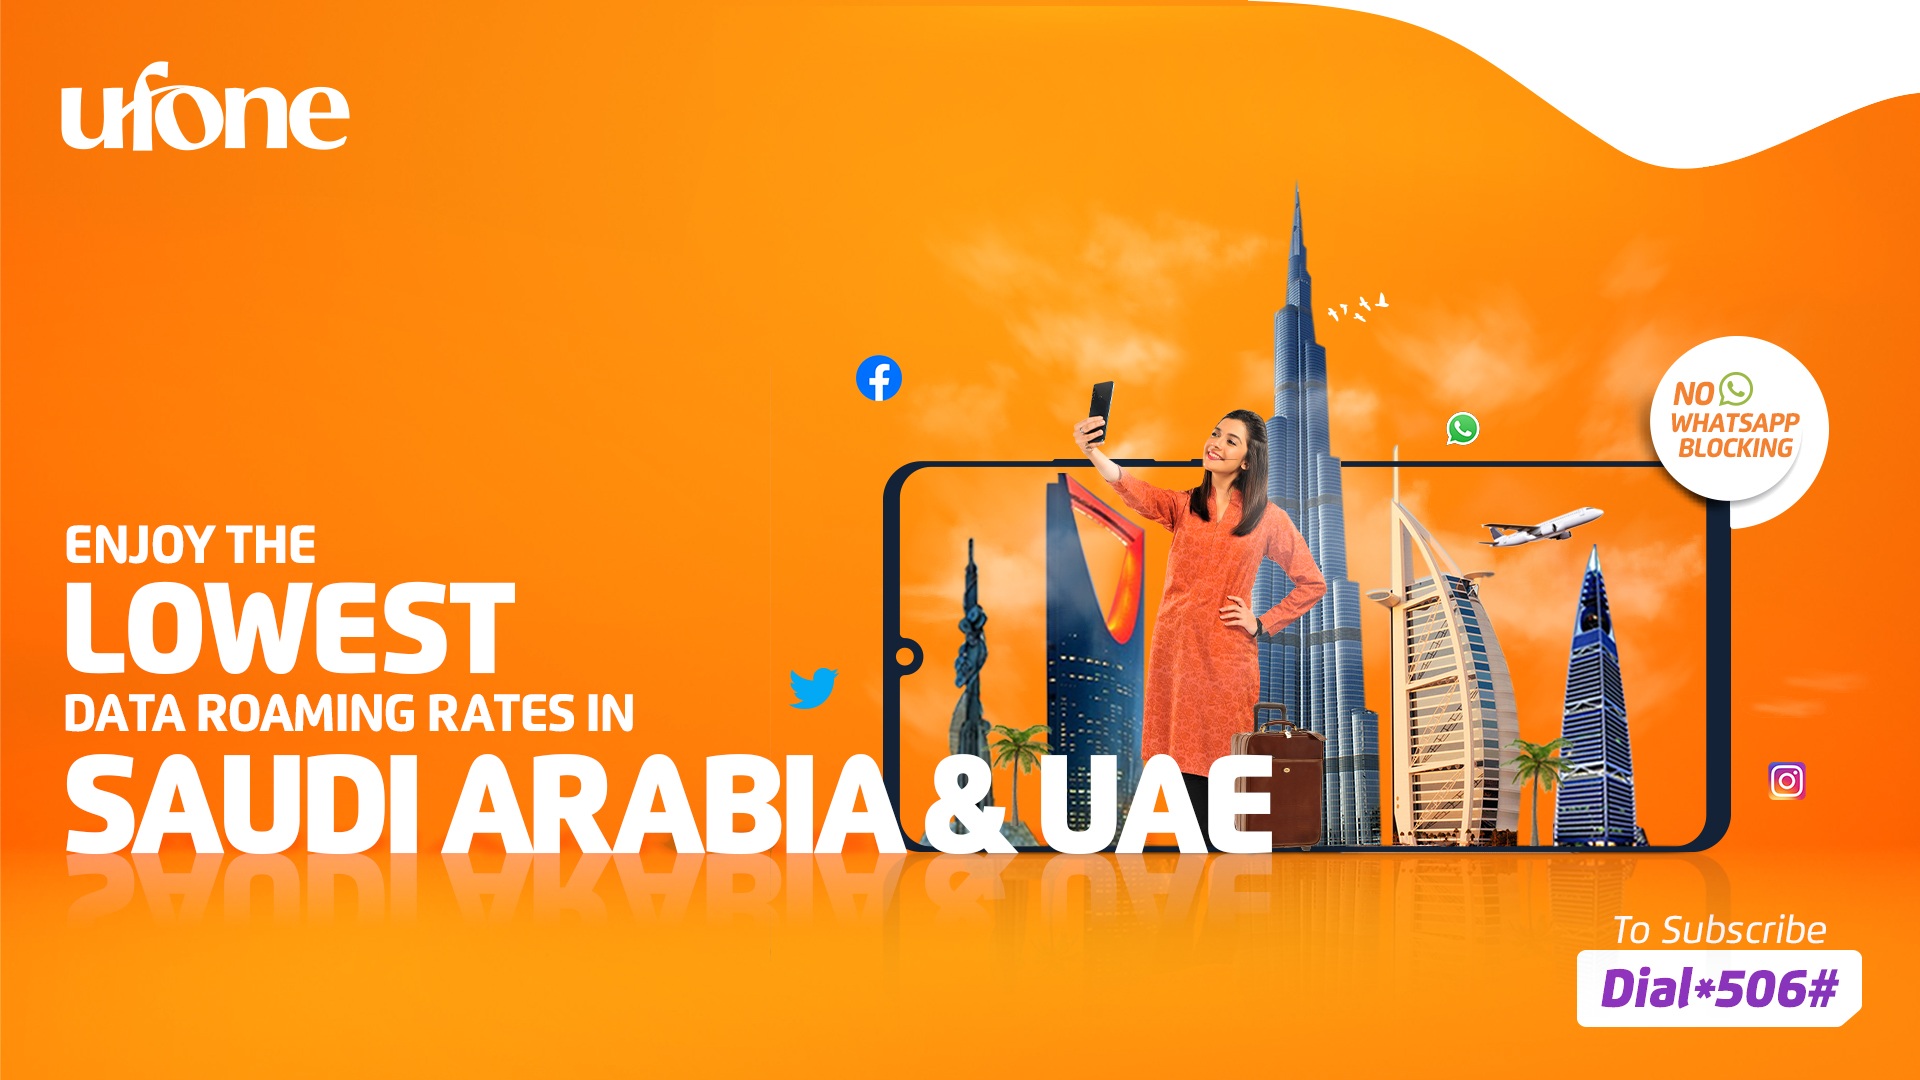 Photo of Ufone offers lowest data roaming rates for Saudi Arabia and UAE